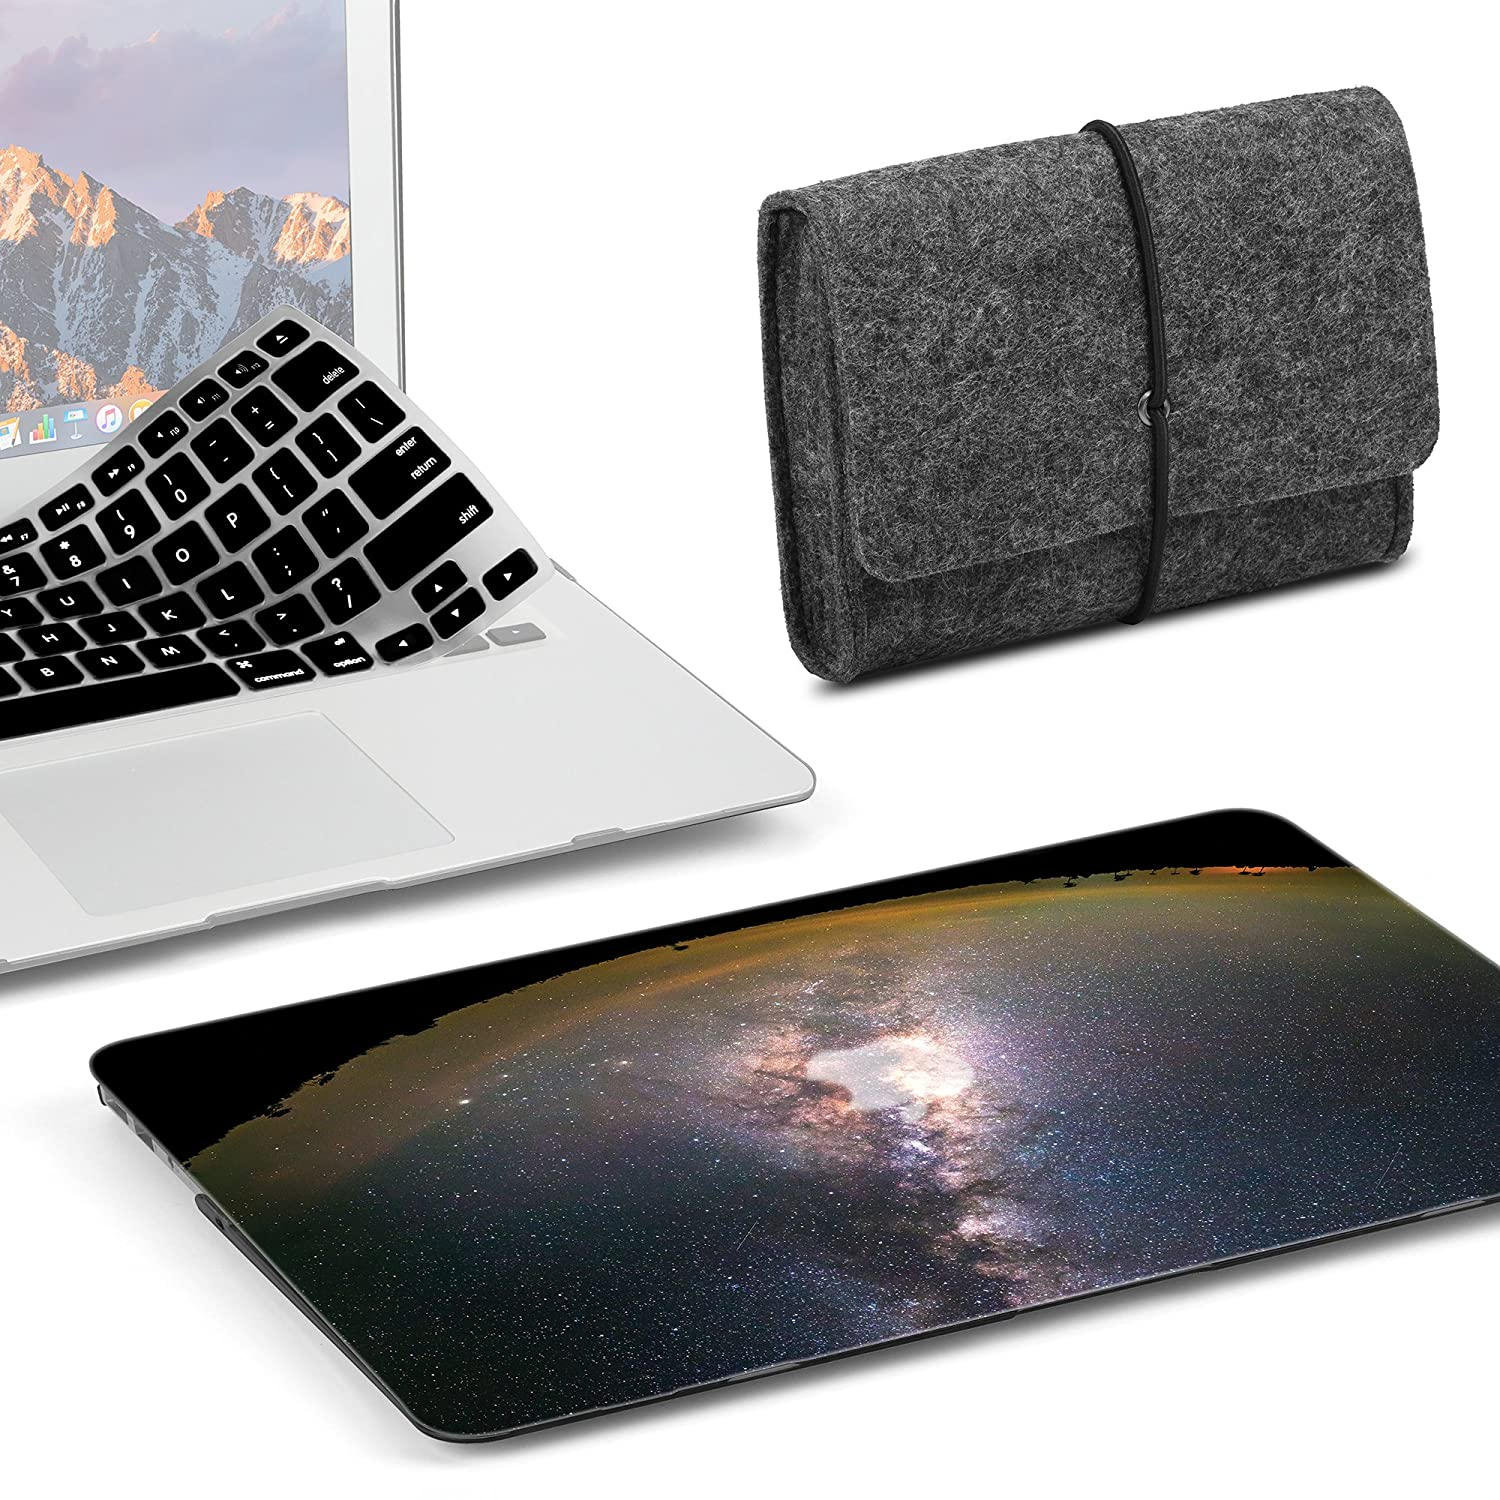 GMYLE 3 in 1 Bundle Felt Storage Pouch Bag & White Marble Soft-Touch Matte Plastic Hard Case with Black Keyboard Cover for MacBook Air 13 inch (Model: A1369/A1466) NPL530072